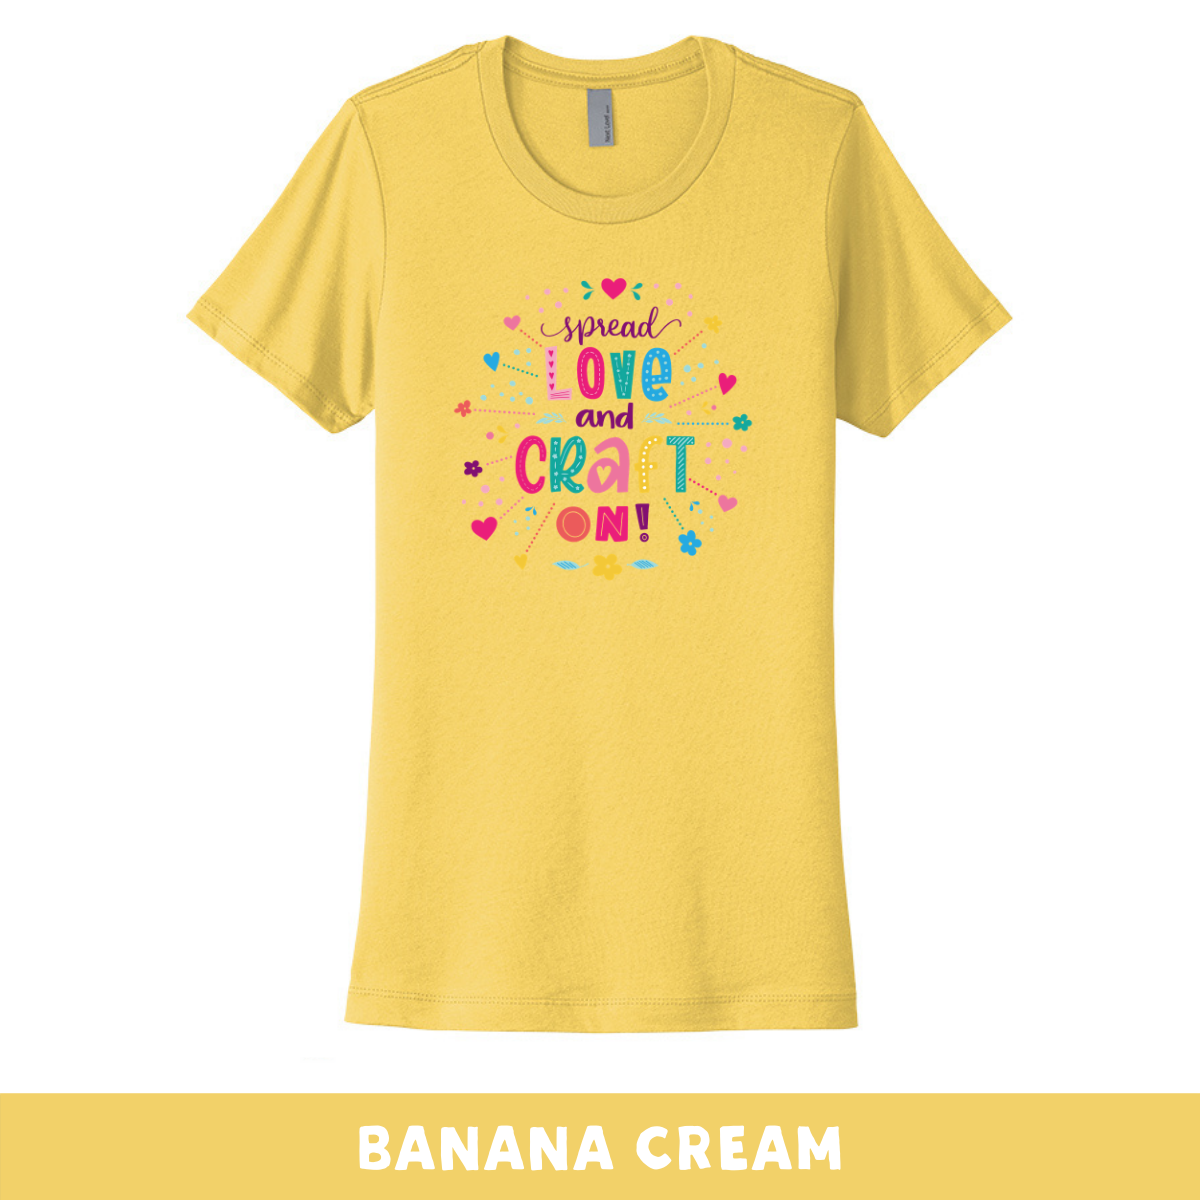 Banana Cream - Crew Neck Boyfriend Tee - Spread Love and Craft On